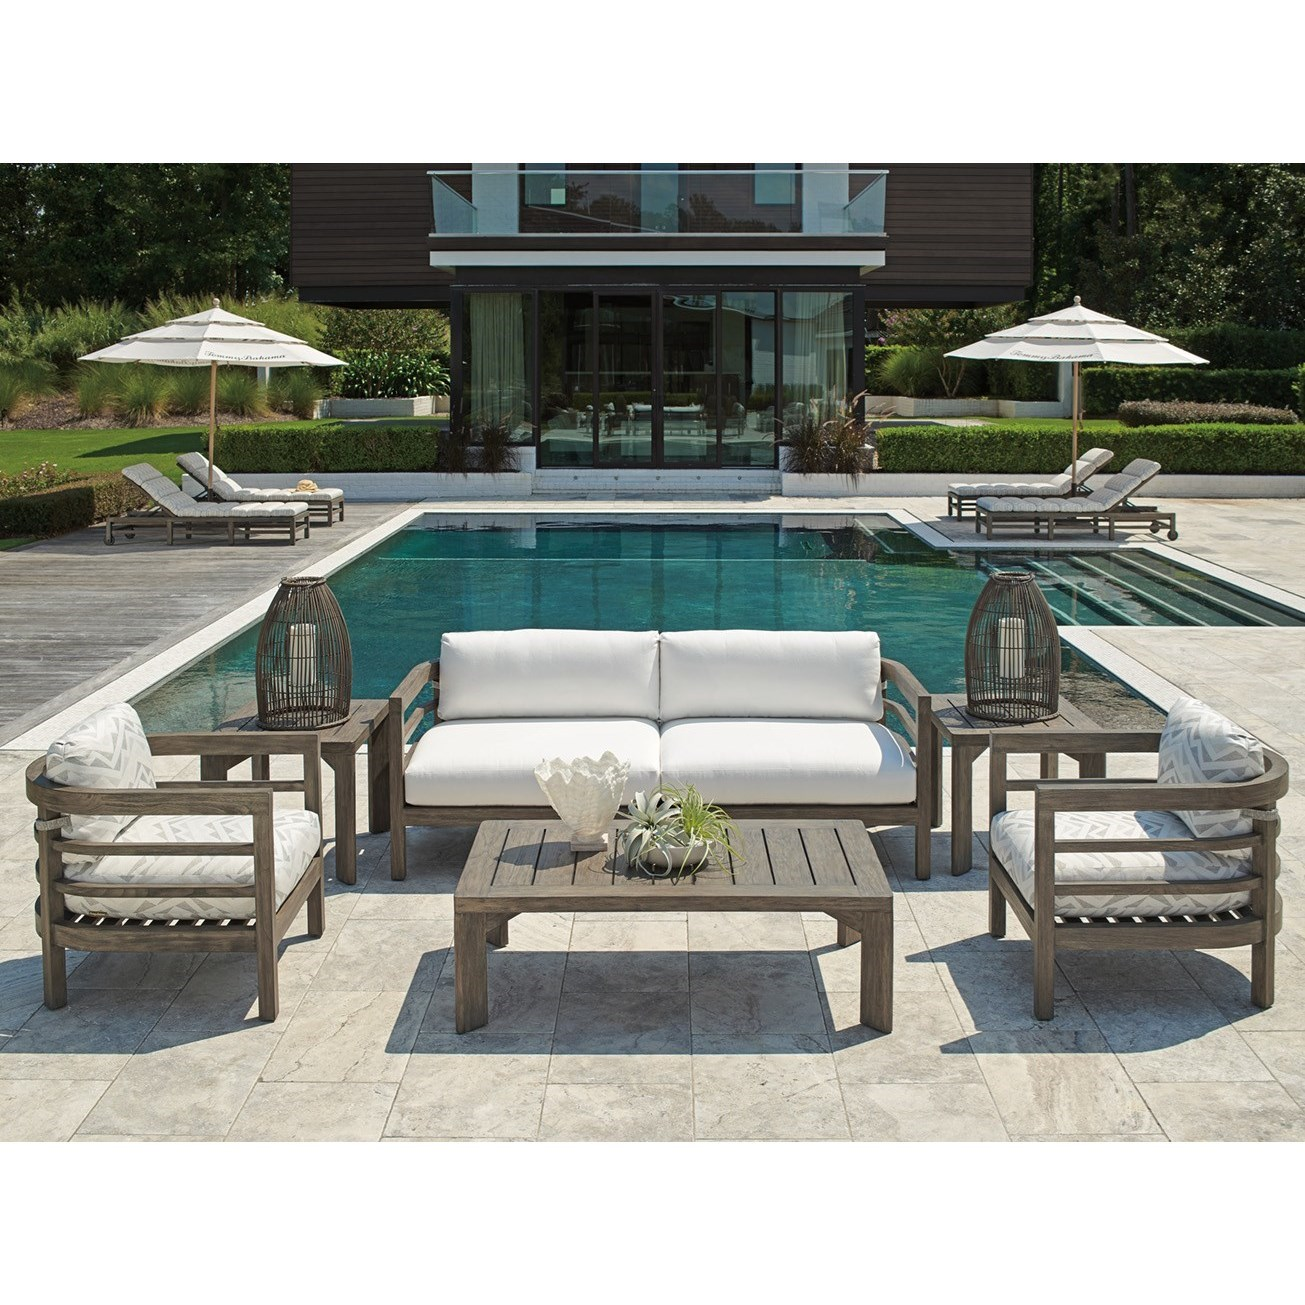 La Jolla Outdoor Chat Set by Tommy Bahama Outdoor Living at Baer's Furniture